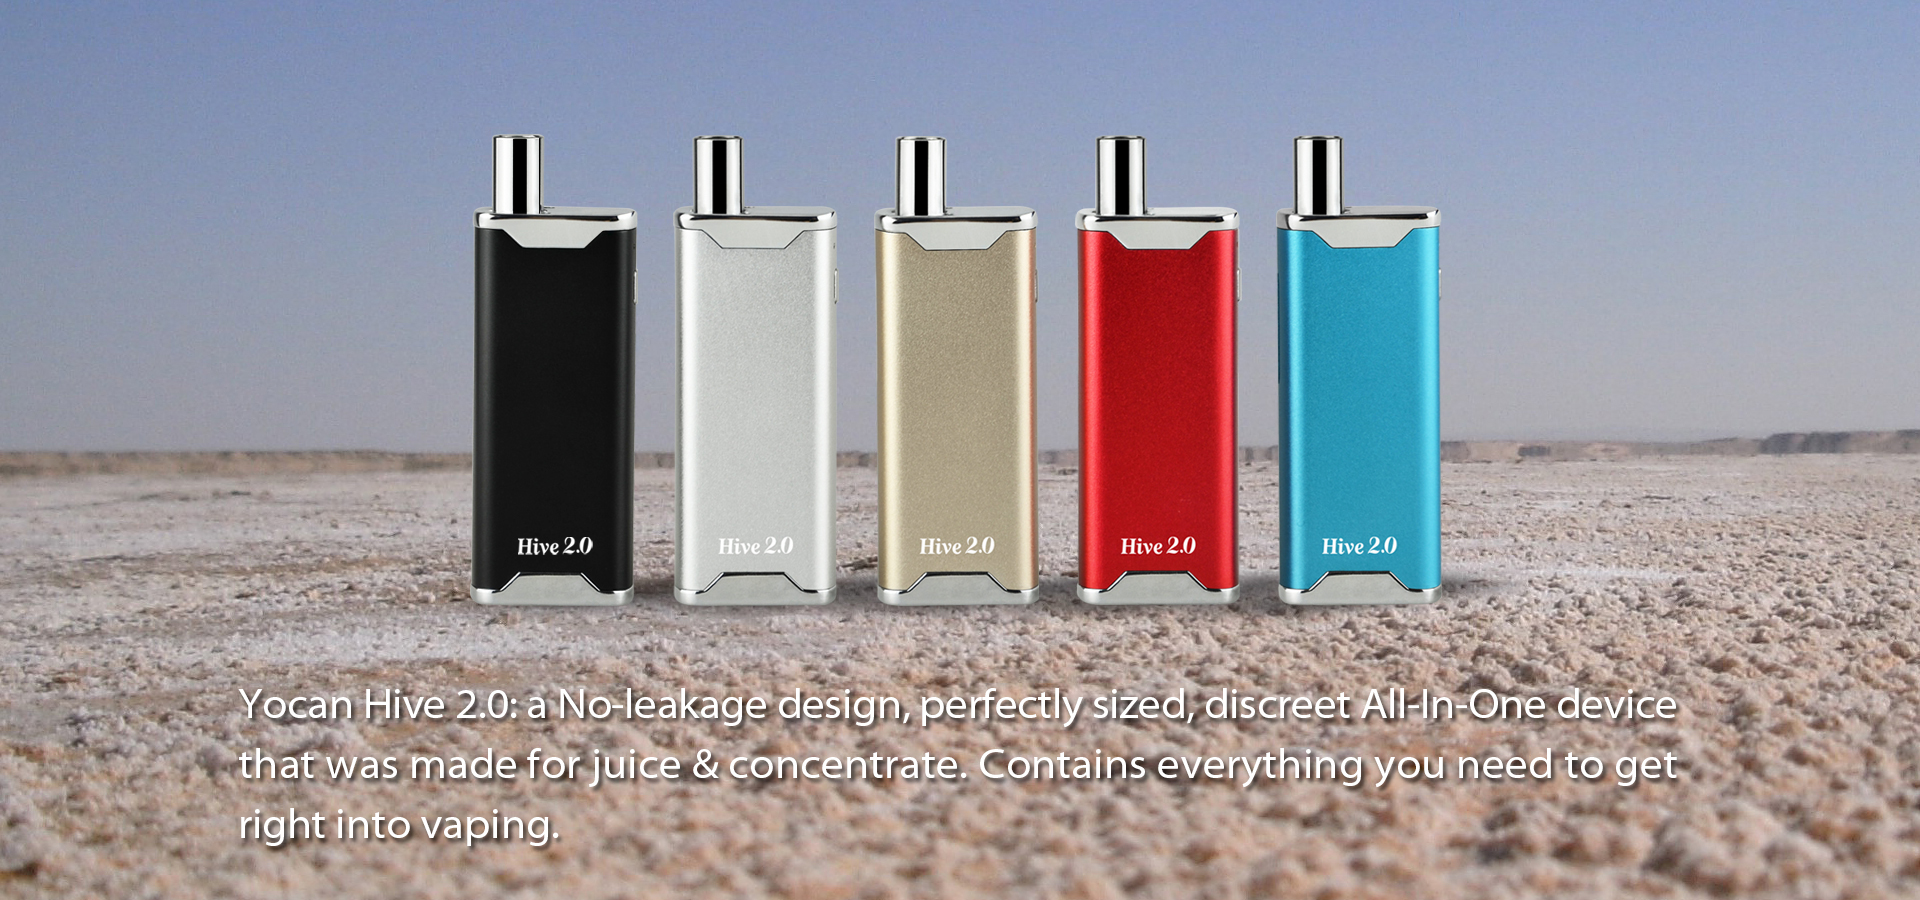 Yocan Hive 2.0: all-in-one vape pen for juice and concentrate